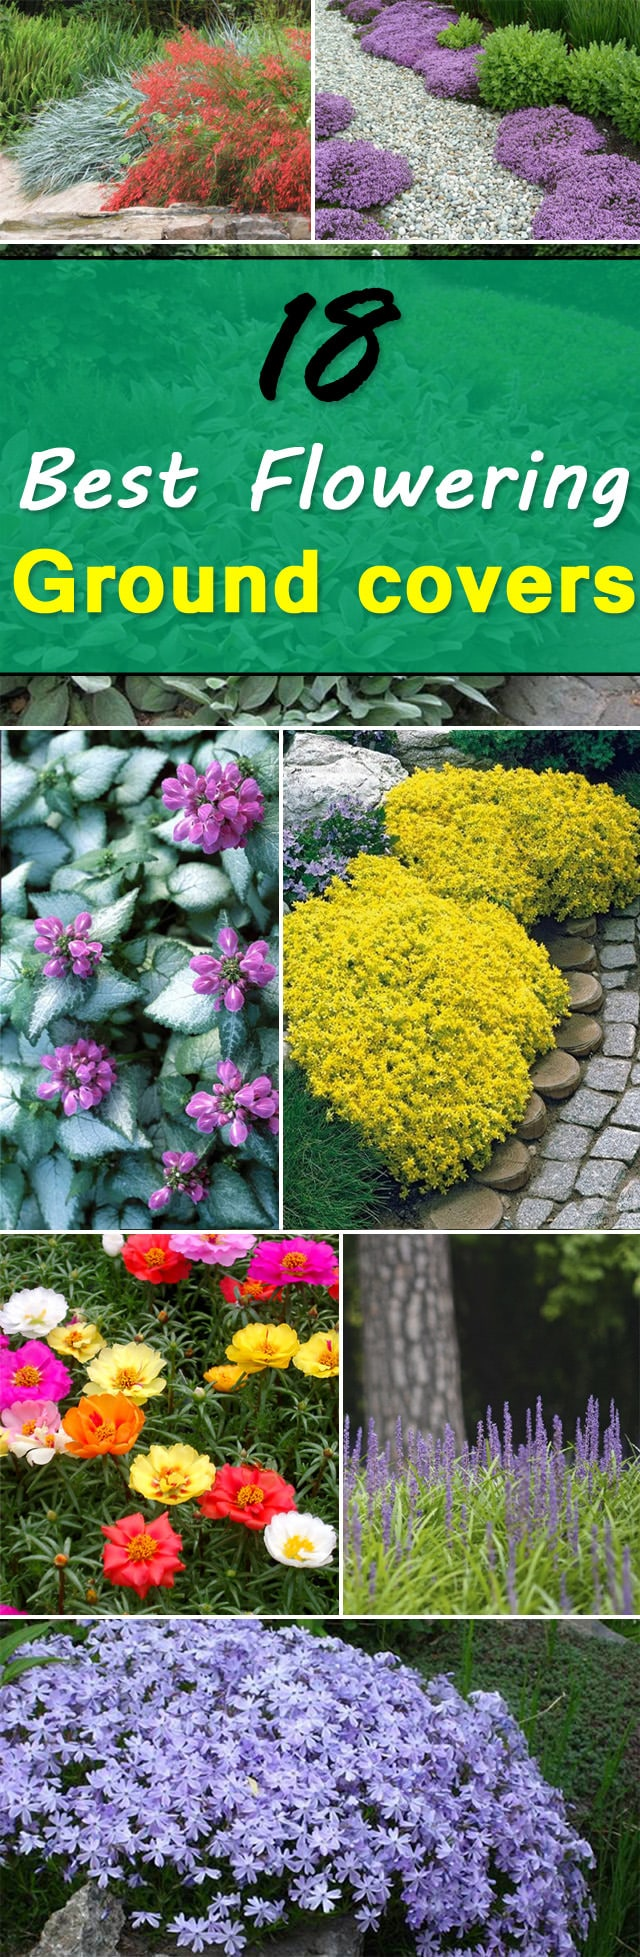 best flowering ground cover plants  balcony garden web, Natural flower